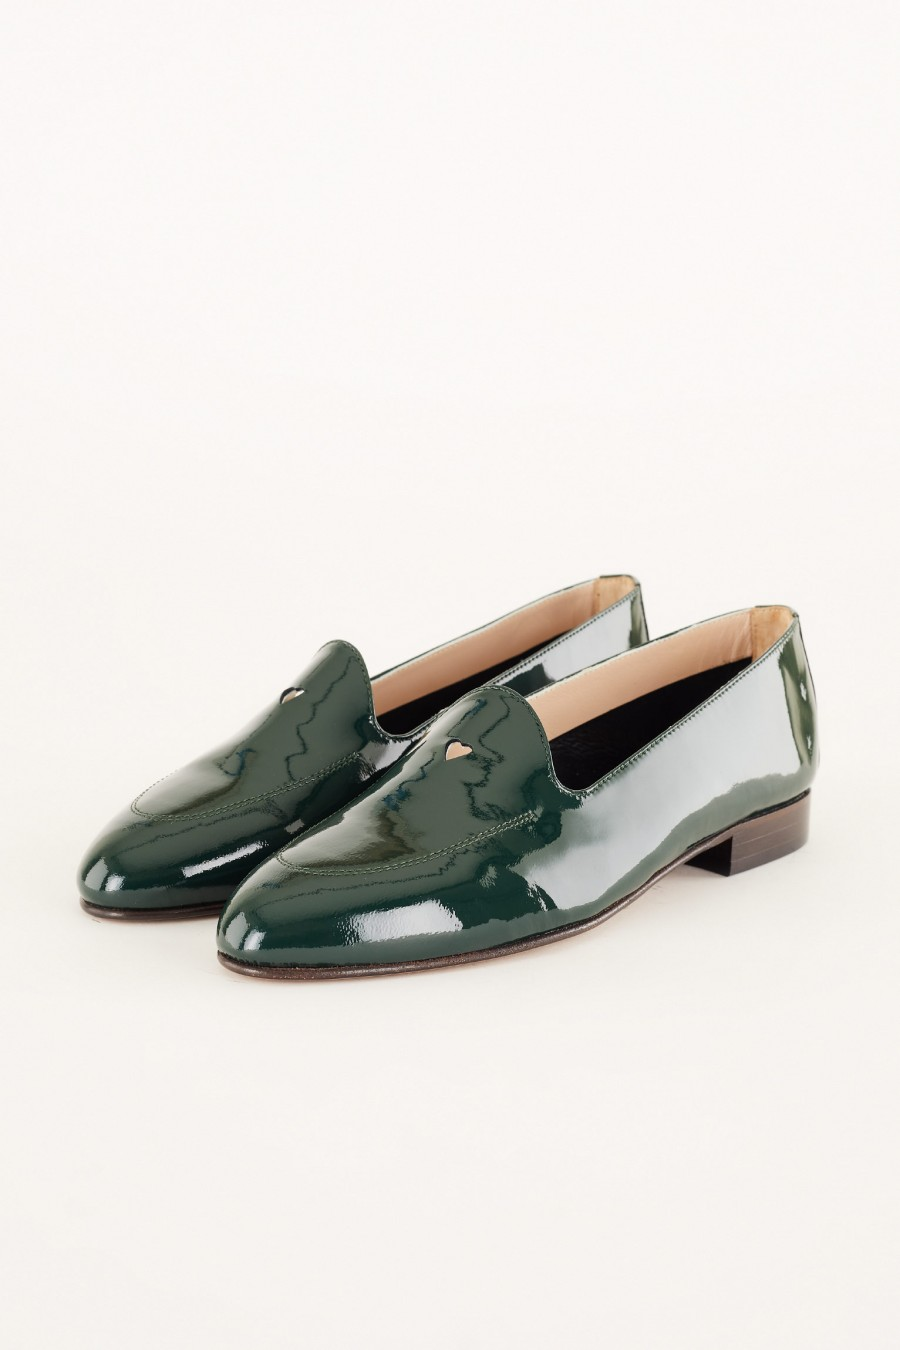 loafers in dark green patent leather